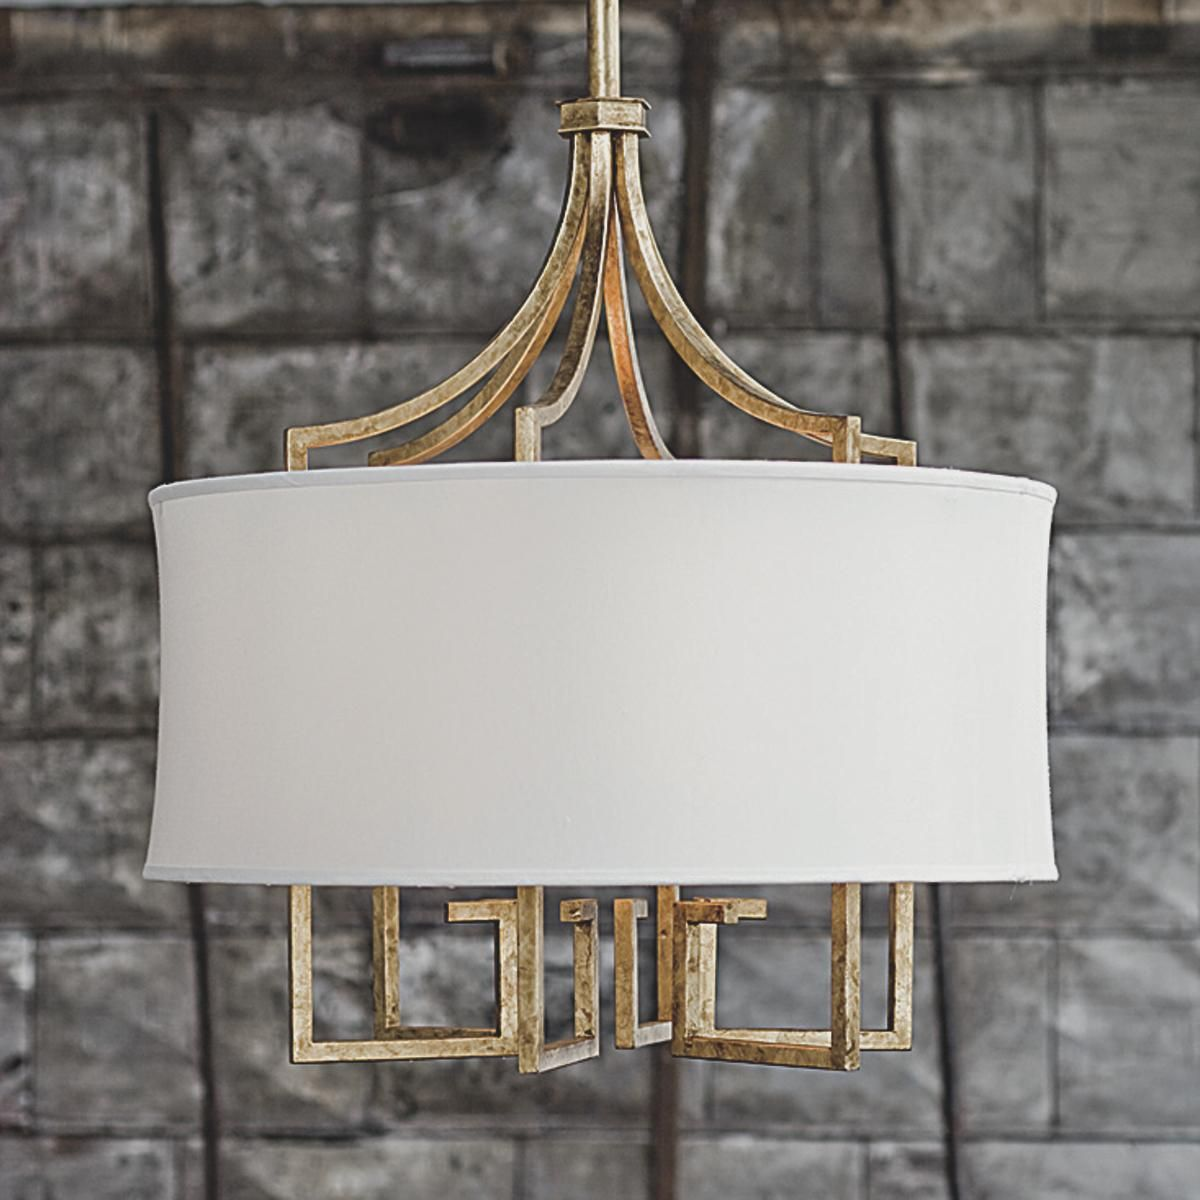 Greek Key Shade Chandelier Available In Gold Or Nickel 44 H X 24 W White Linen Drum At Shades Of Light 1 572